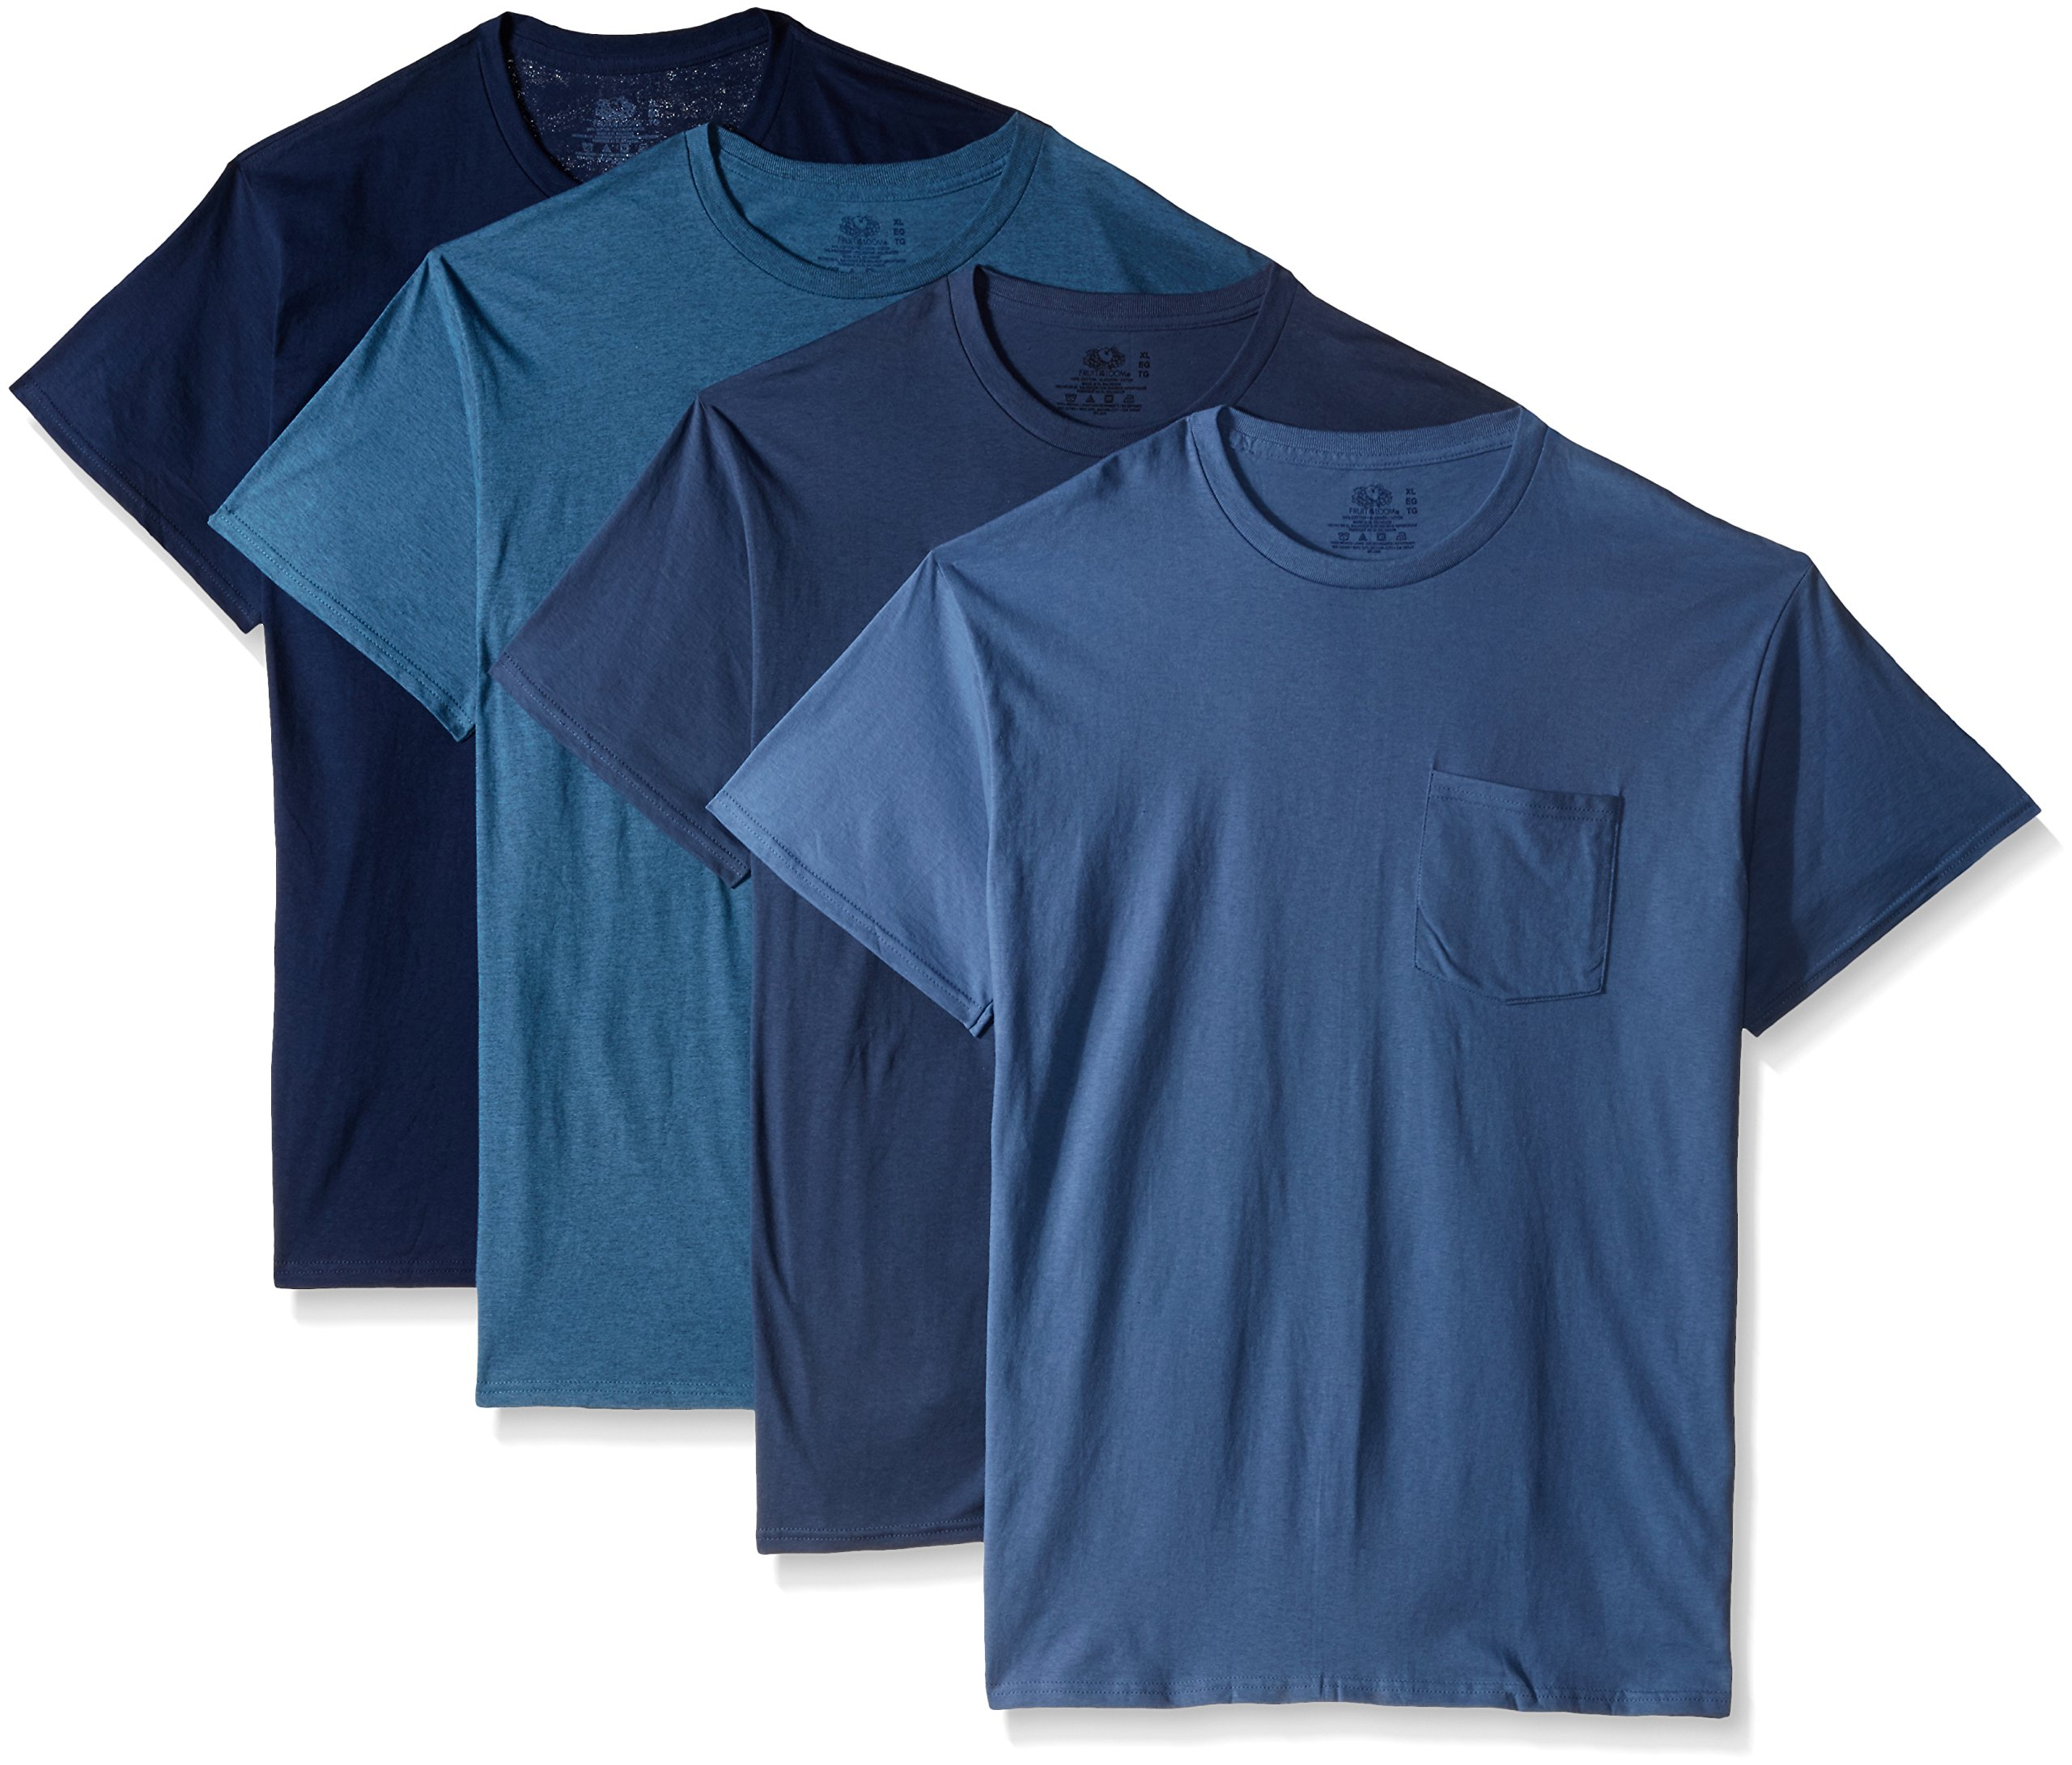 Fruit of the Loom Men's Pocket Crew Neck T-Shirt - XX-Large - Assorted Blues (Pack of 4)